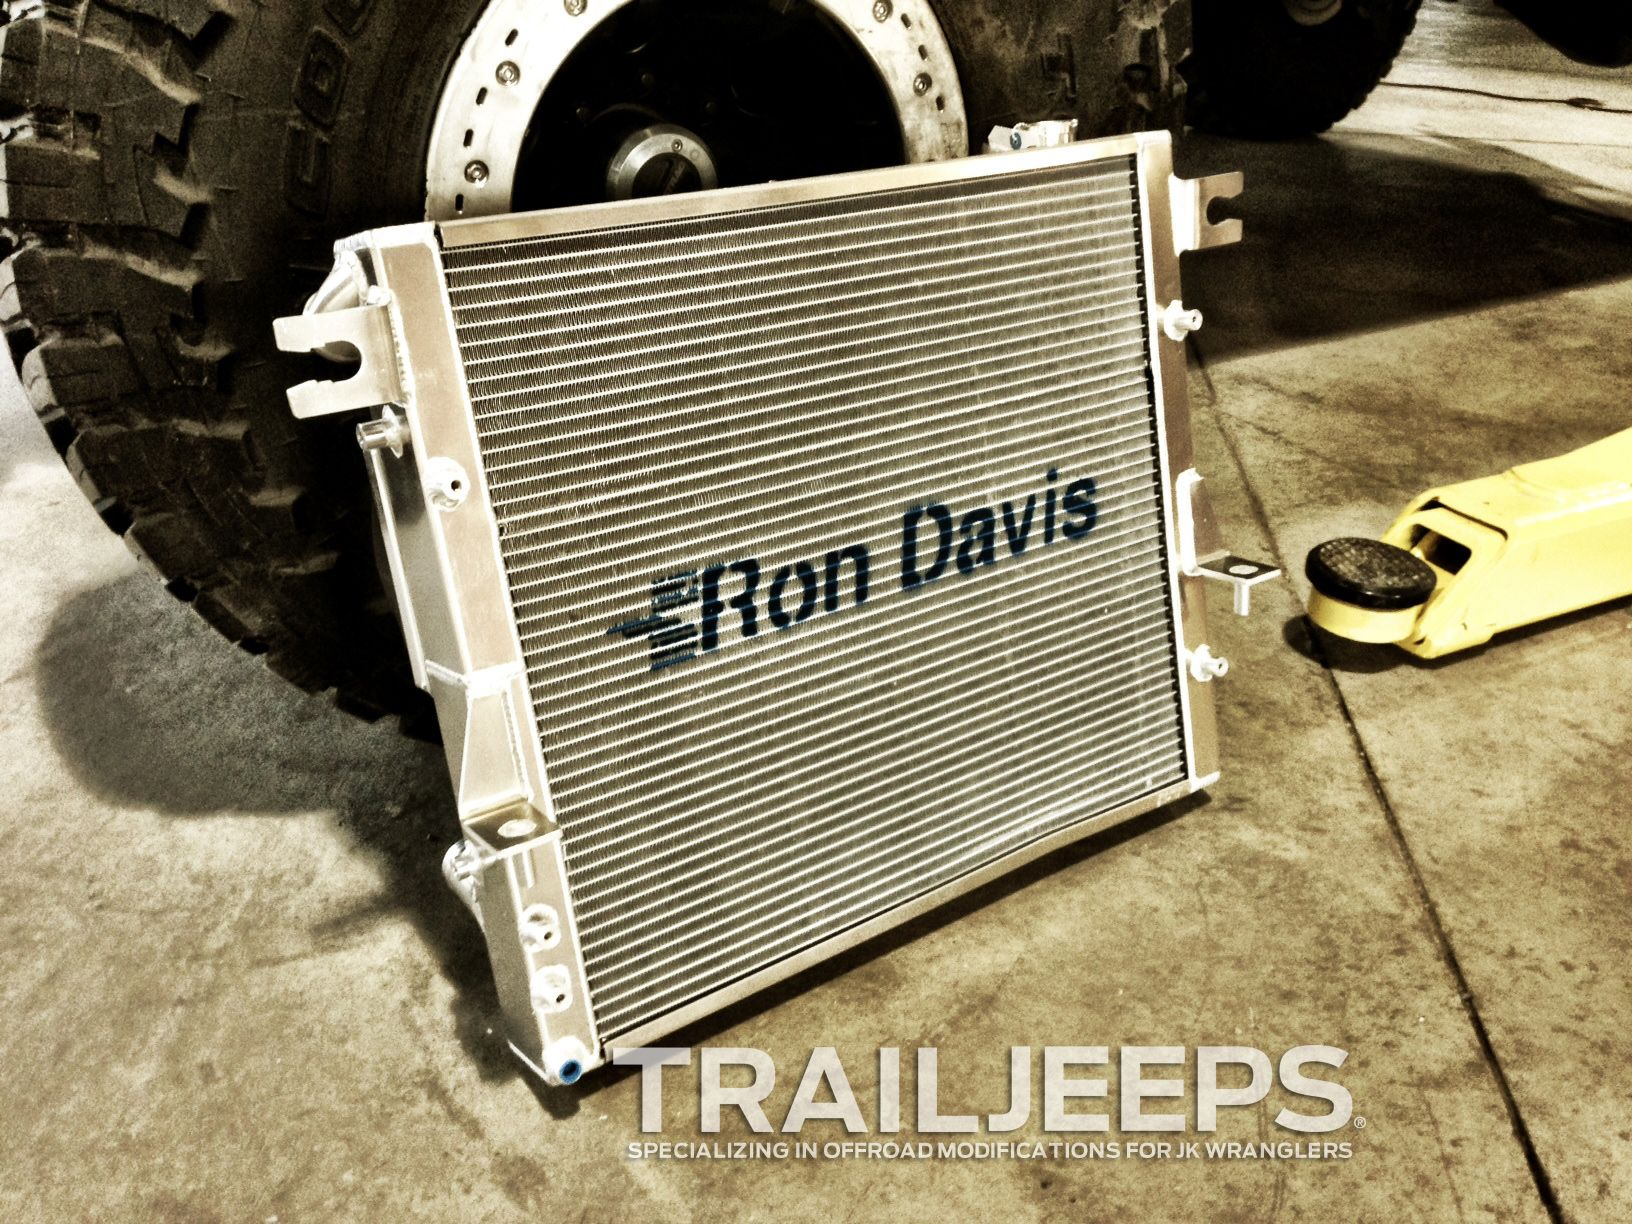 Ron Davis Aluminum Radiator Specifically Designed To Work With